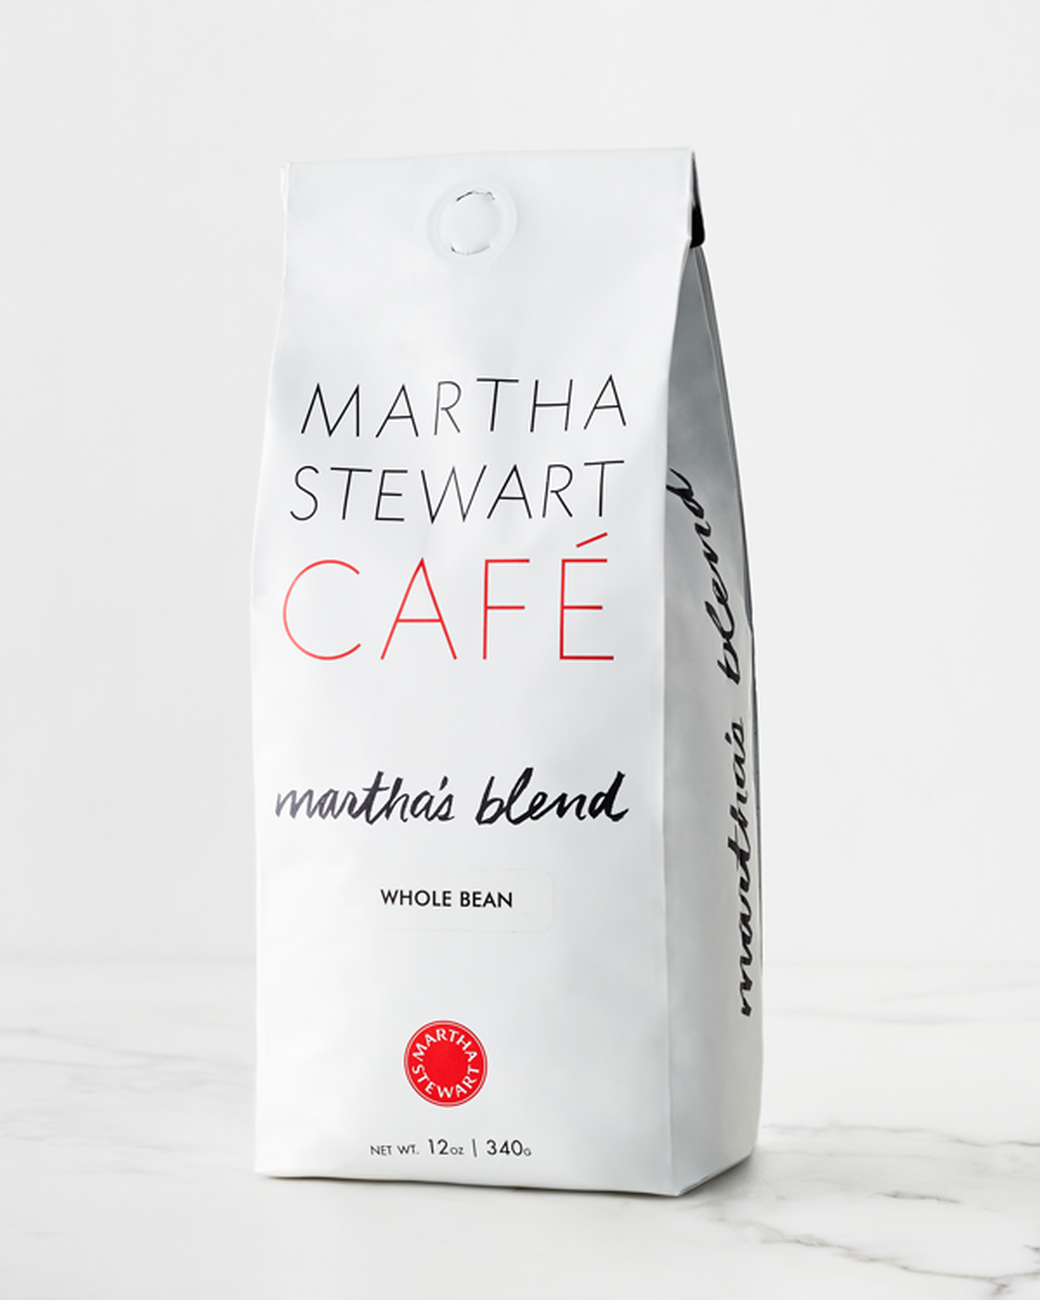 Martha's signature blend from the Martha Stewart Cafe coffee line